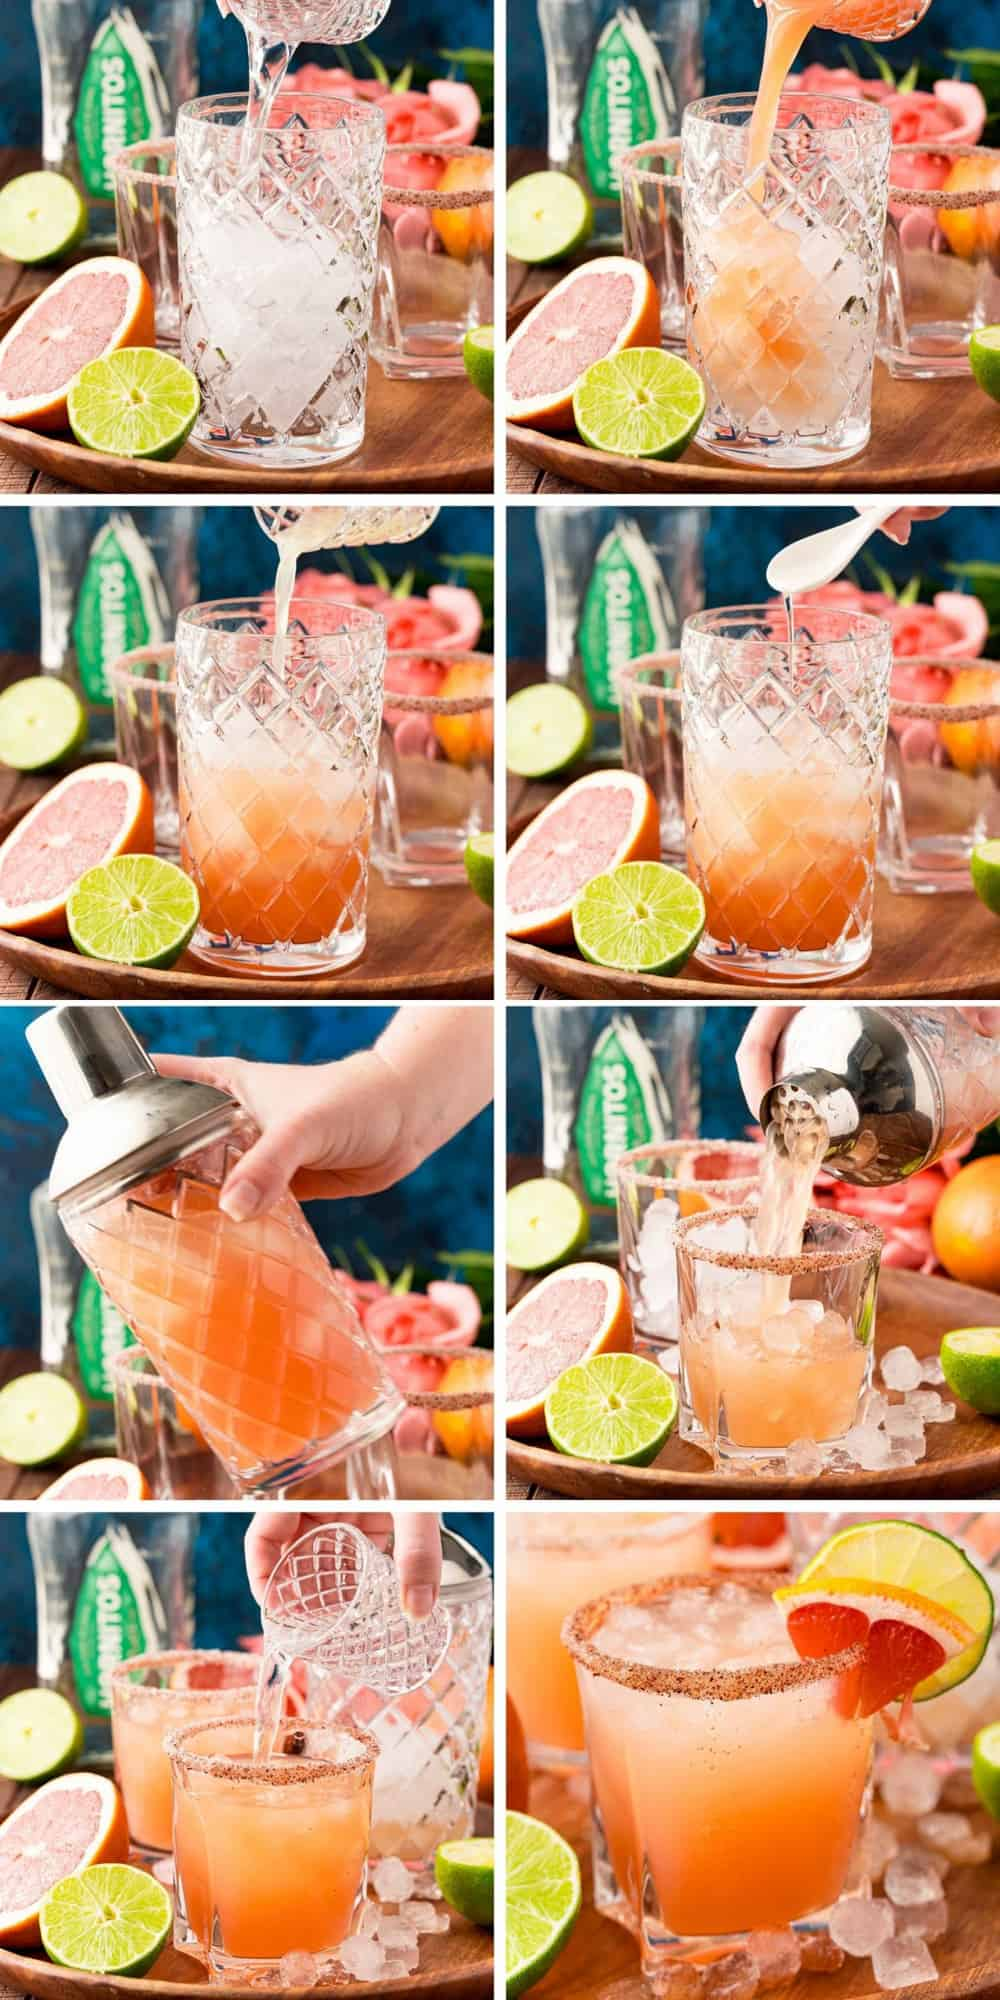 8 images of steps of making a paloma cocktail.